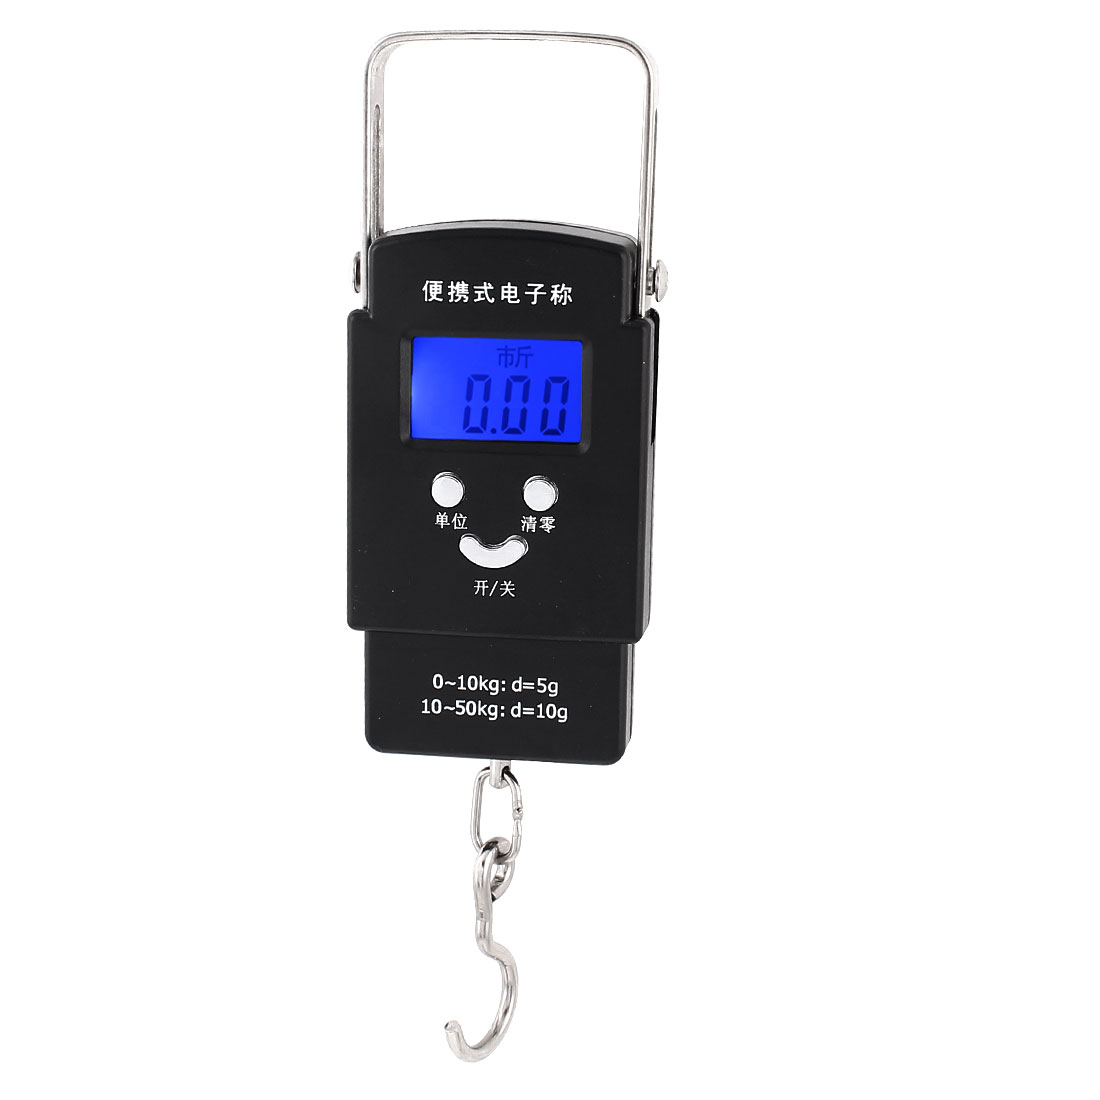 10g-50kg Digital Portable Electronic Weight Scale